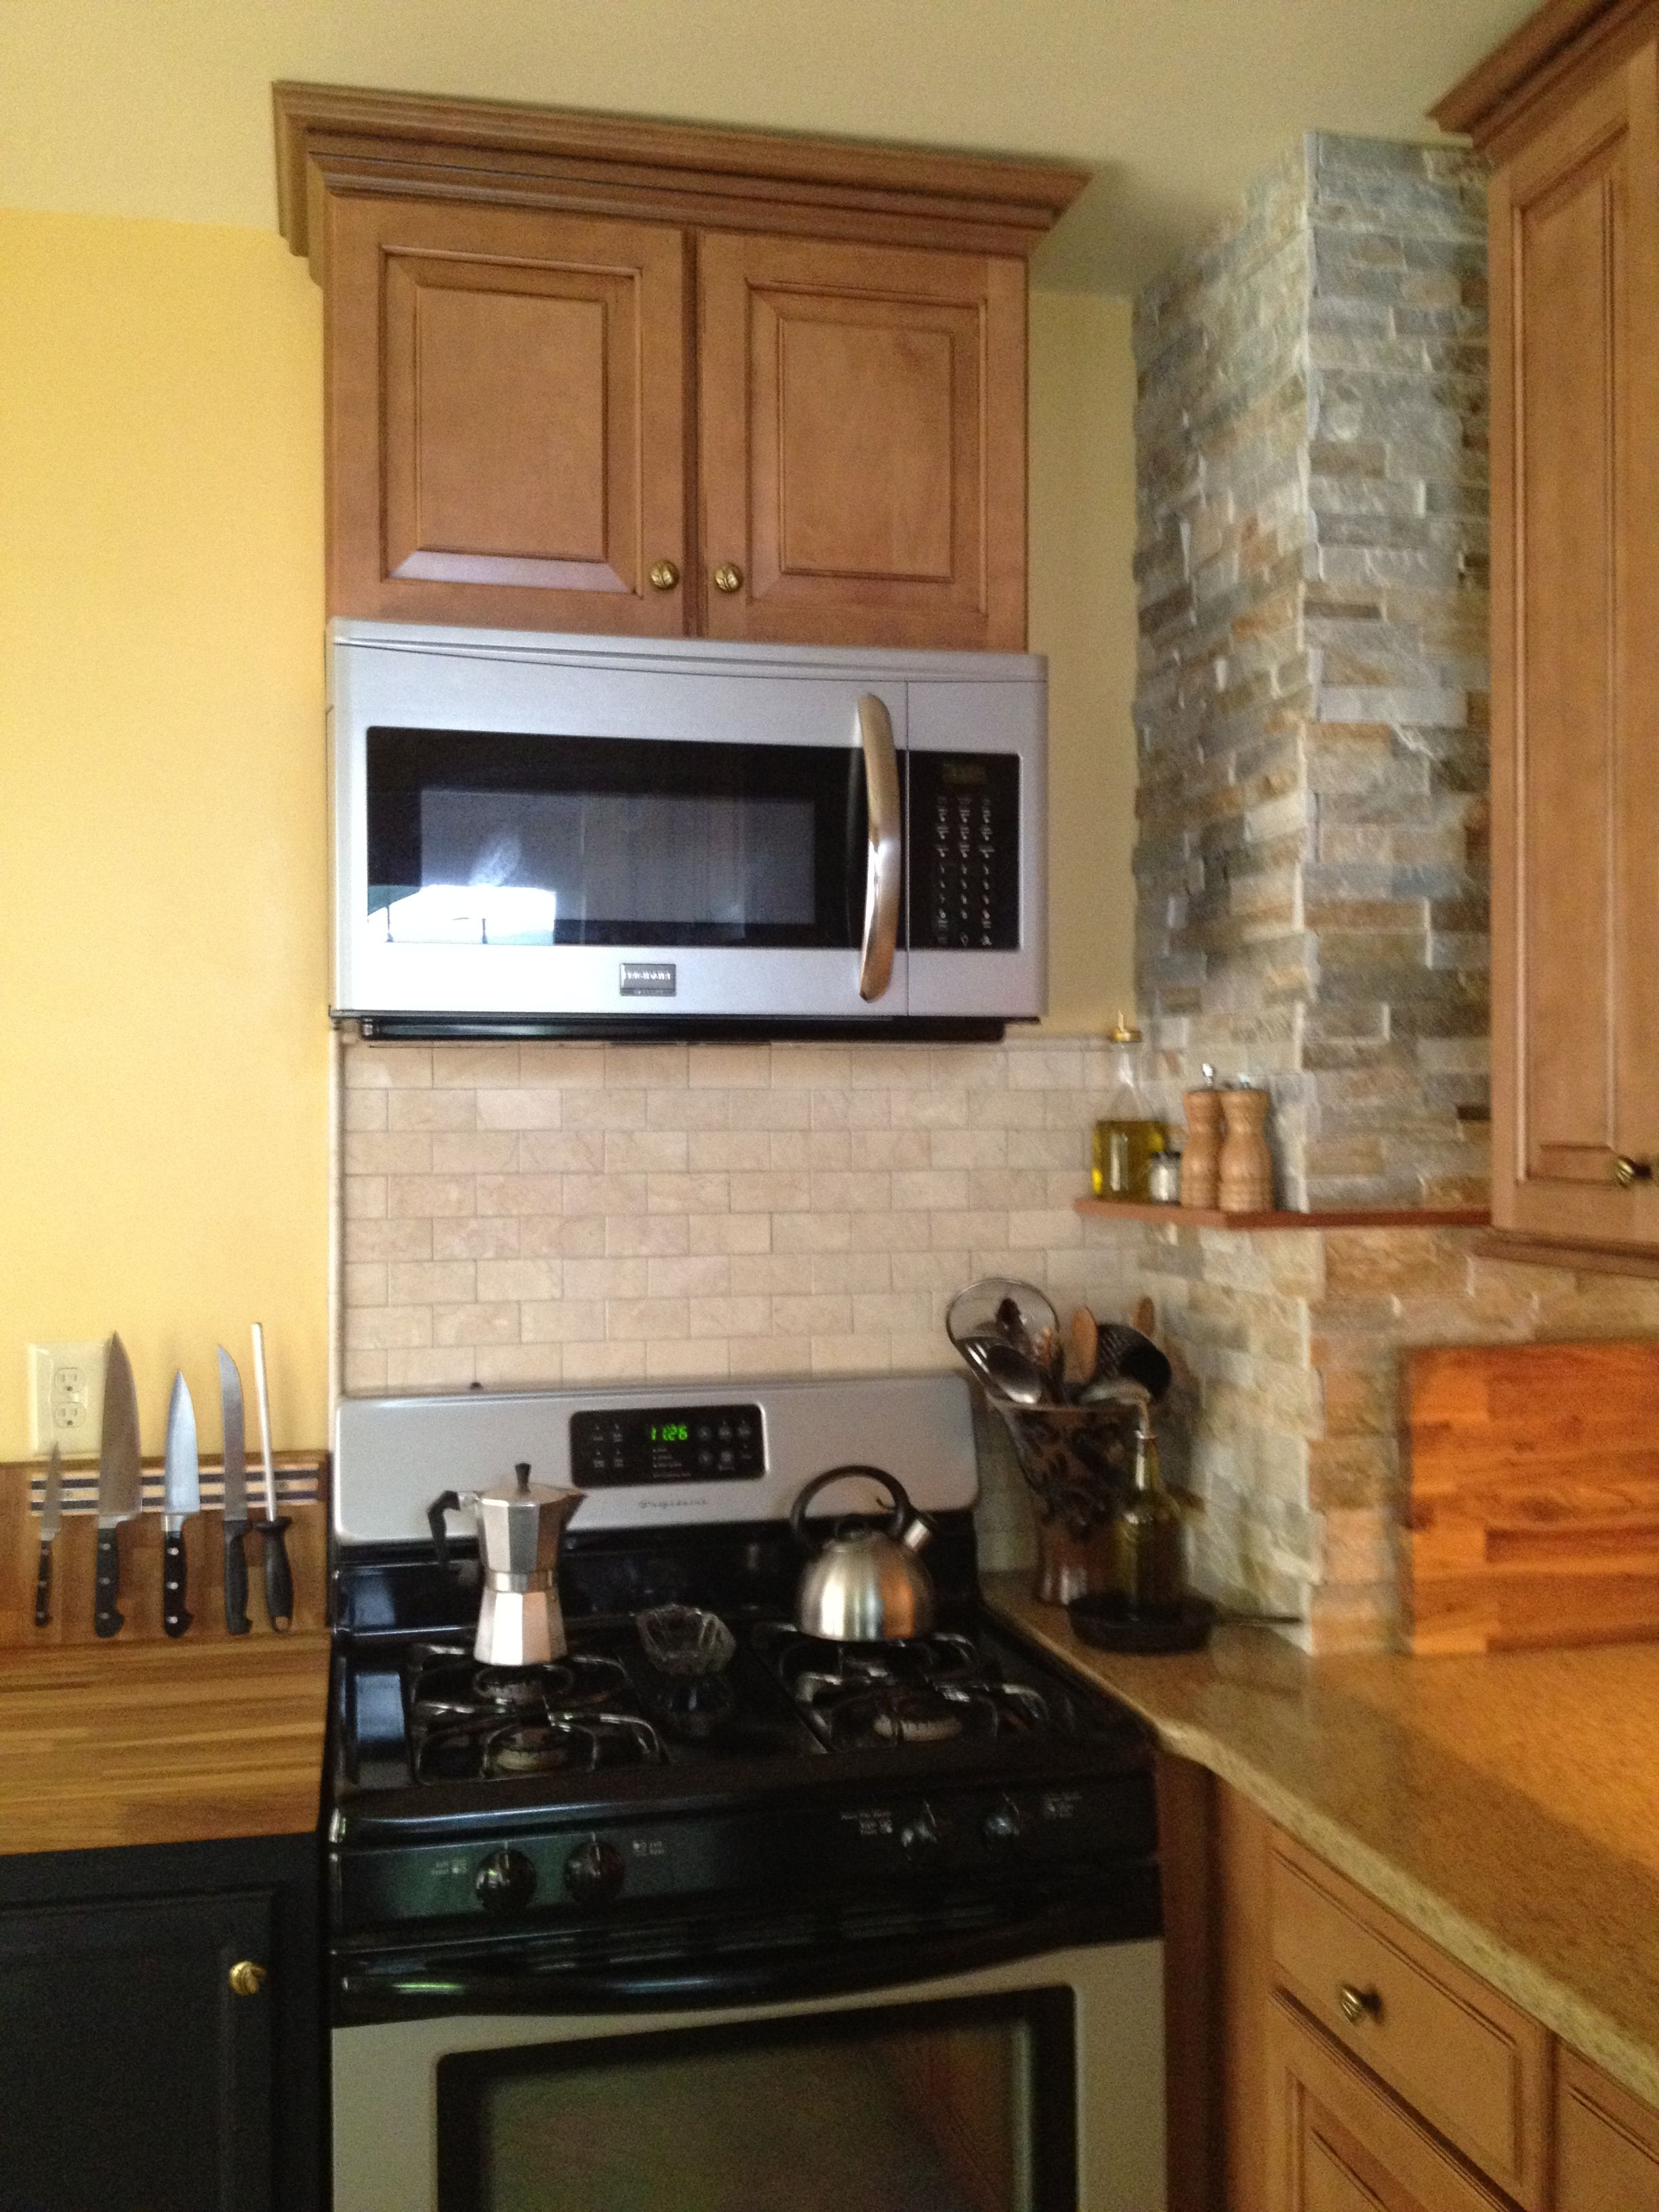 Shenandoah Maple Cabinets With A Spice Finish Backsplash Is Polished Marble And The Chiminey Is Stacked Ledgerstone To Maple Cabinets Cabinet Kitchen Design